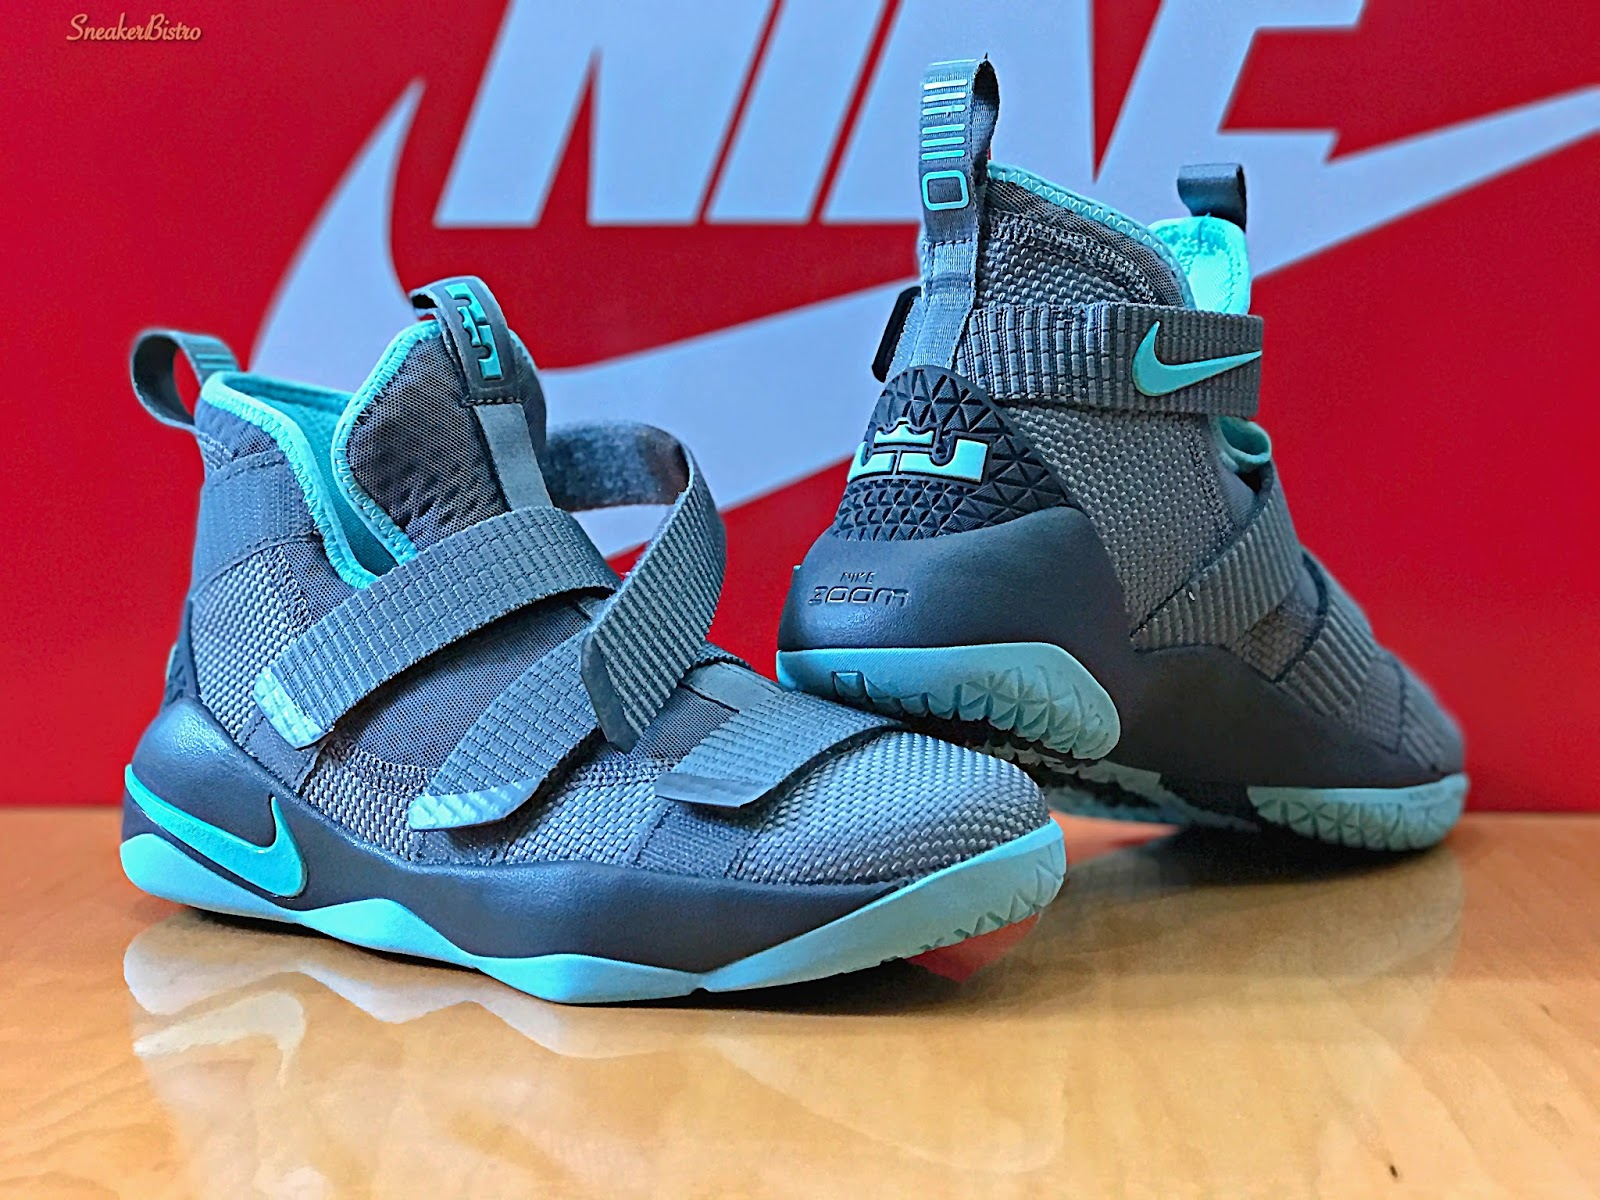 dabf6ab1e729 ... all black basketball shoe 33eef 0c3b6  coupon code for lebron soldier xi  gs cool gray island green 0c58e 2c455